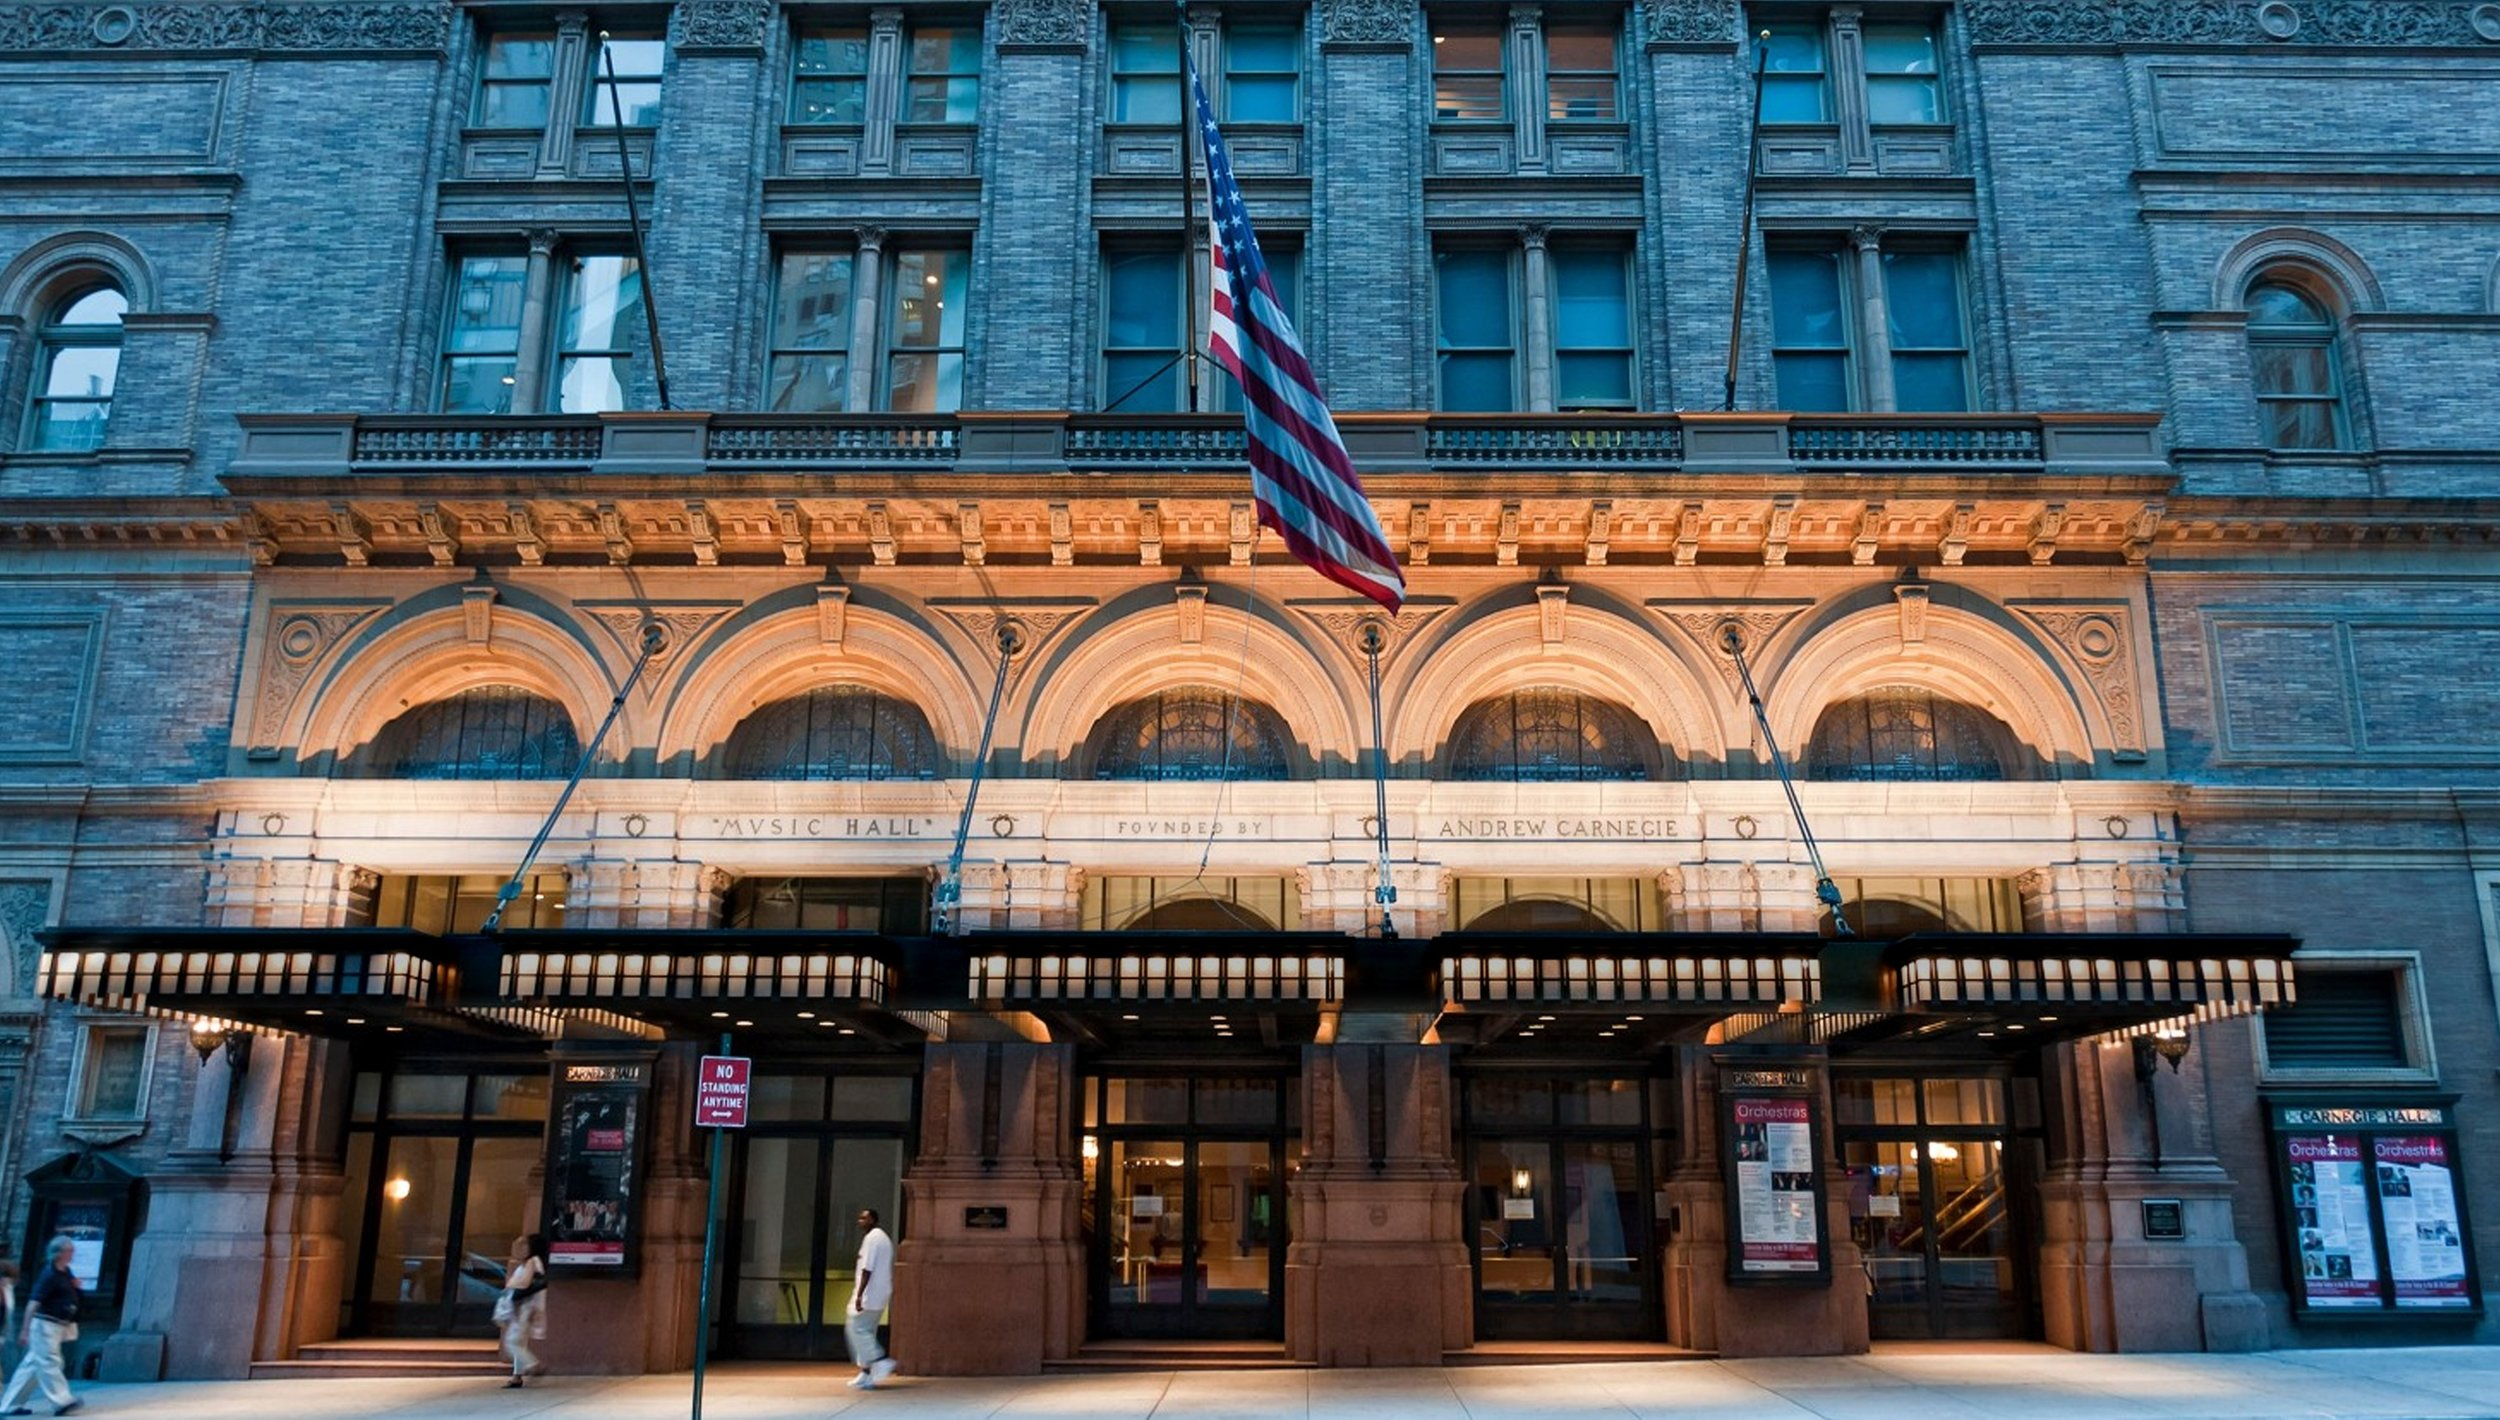 Carnegie Hall, 881 7th Ave, New York